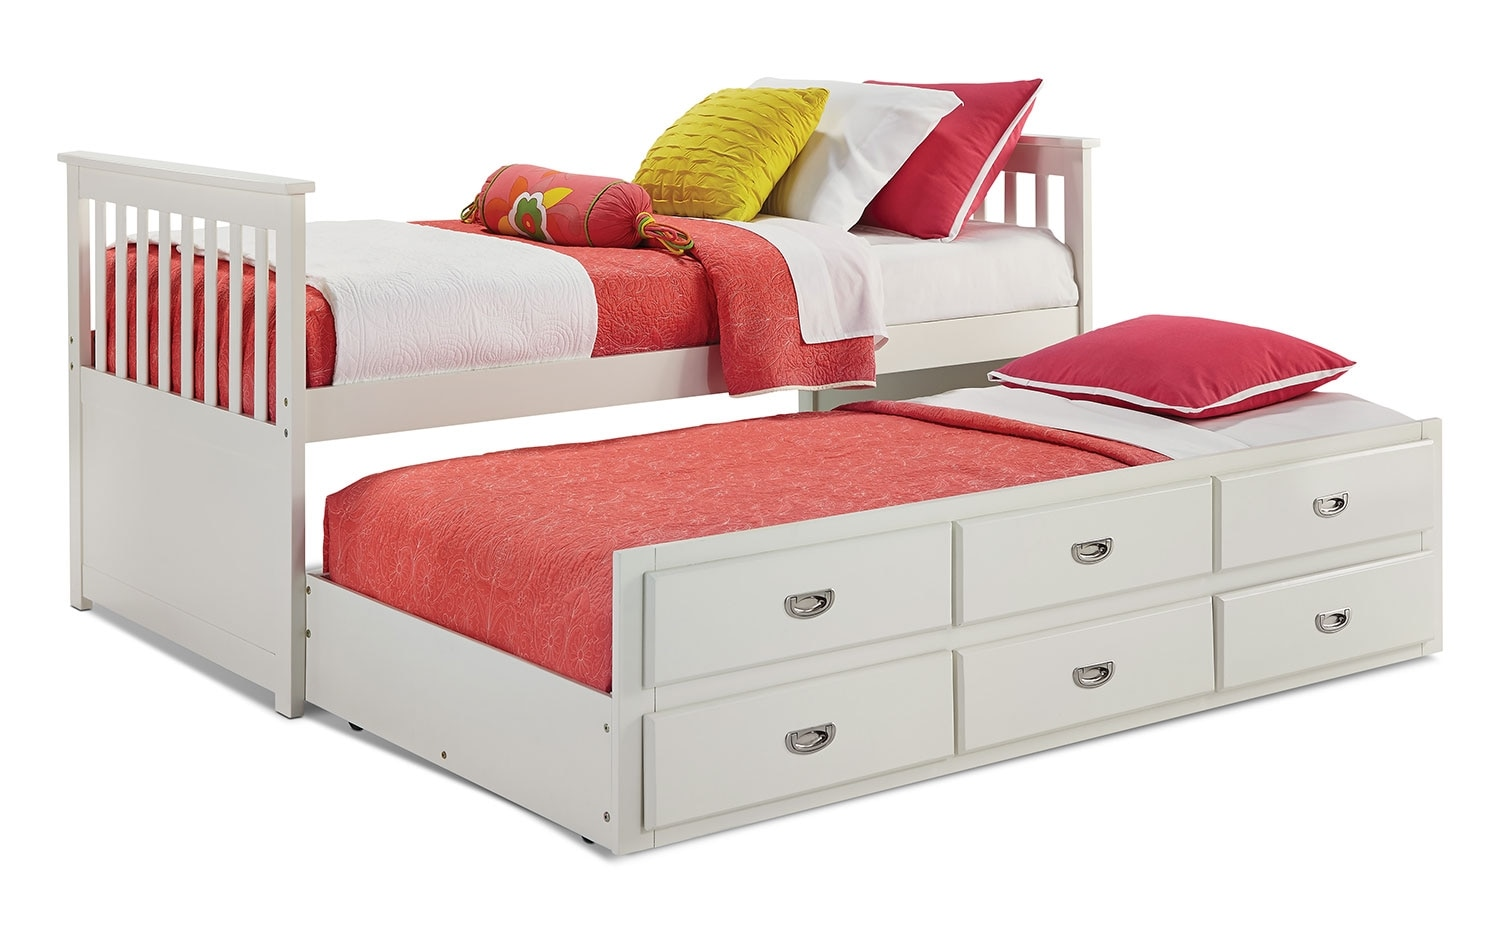 Chadwick twin captain s bed white united furniture for Captains bed